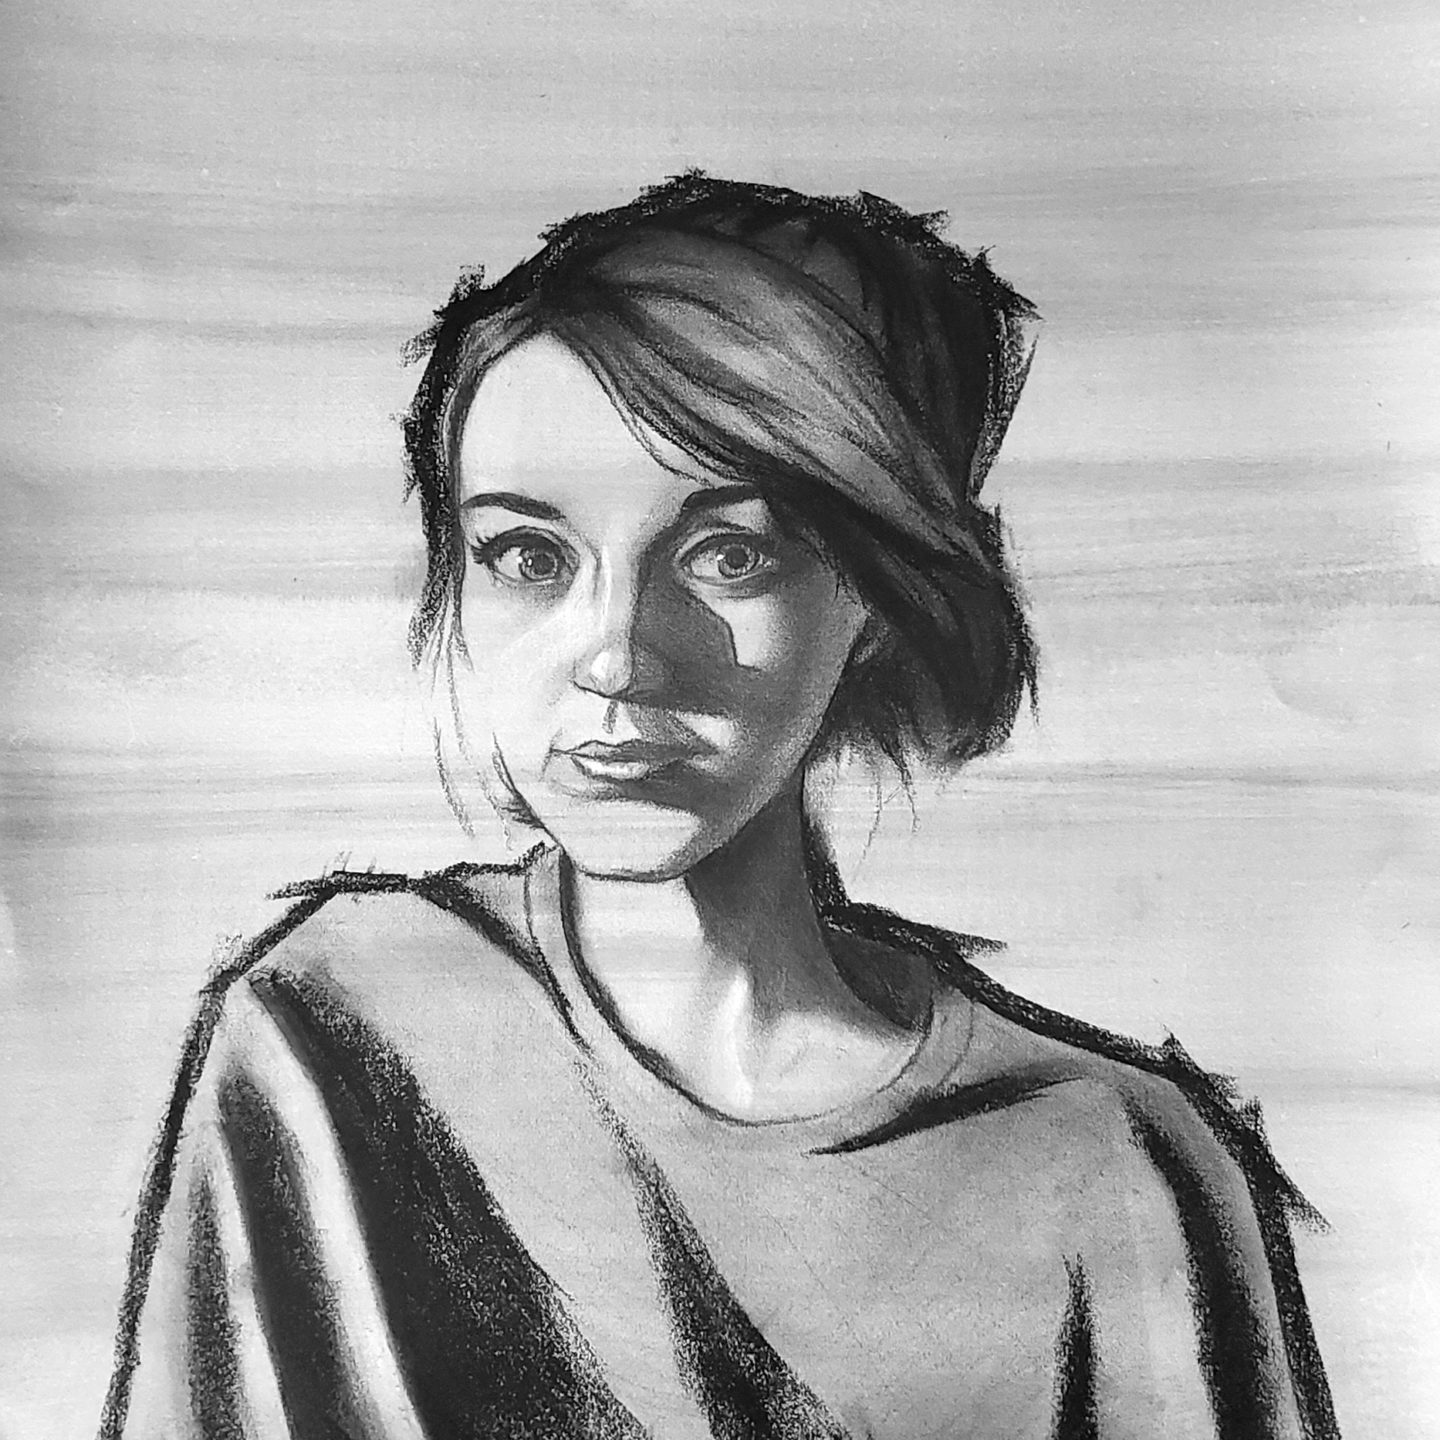 Charcoal on paper with ink wash